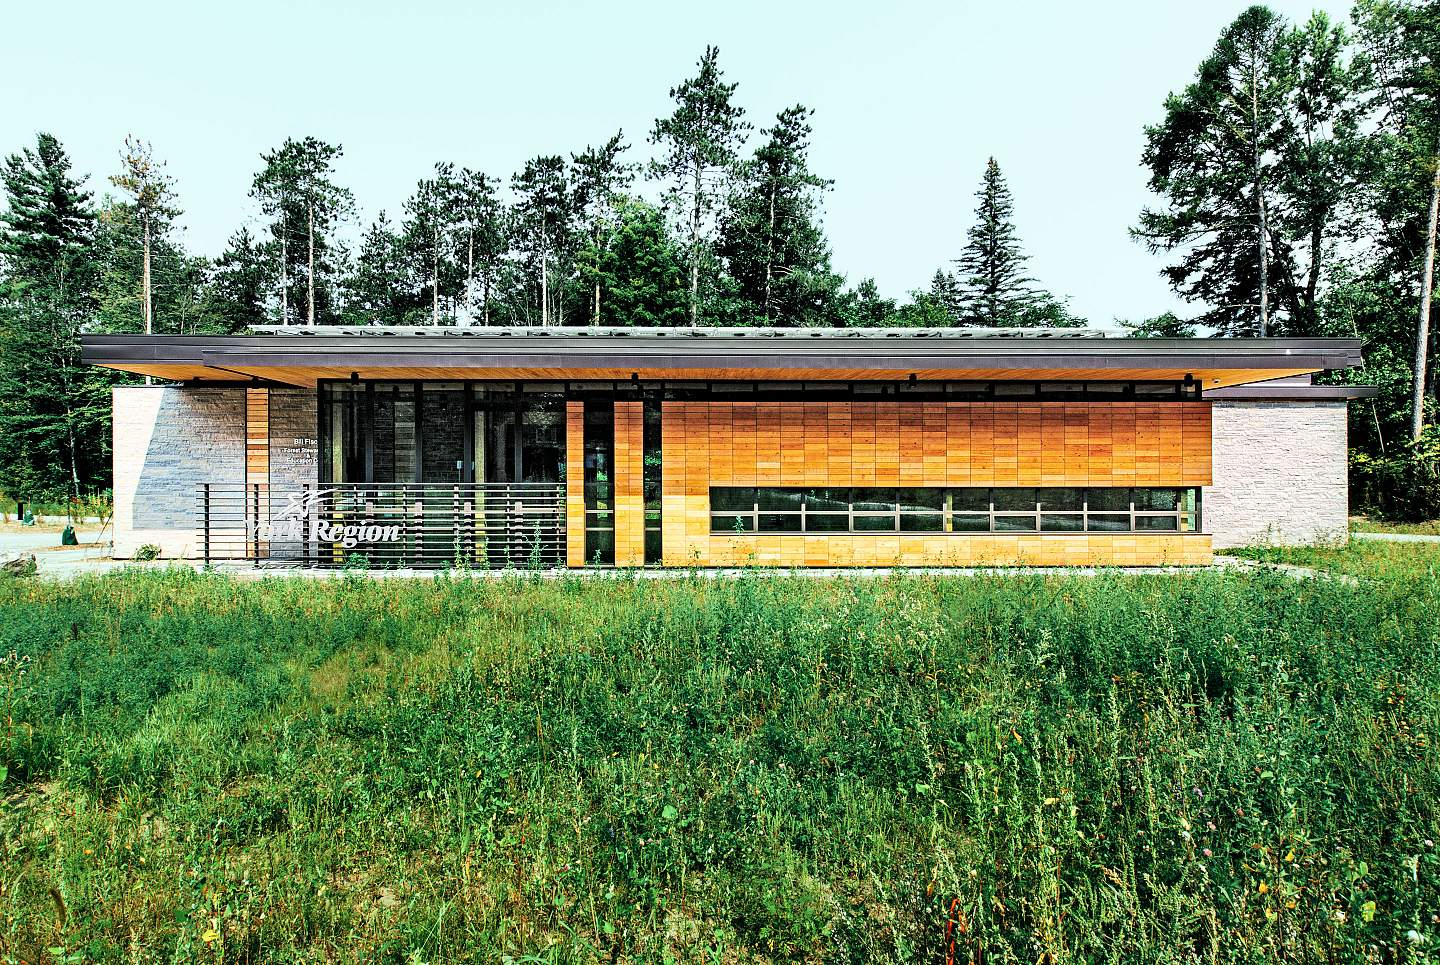 The York Region Forest Stewardship Education Centre targets LEED Platinum and Living Building Challenge standards.